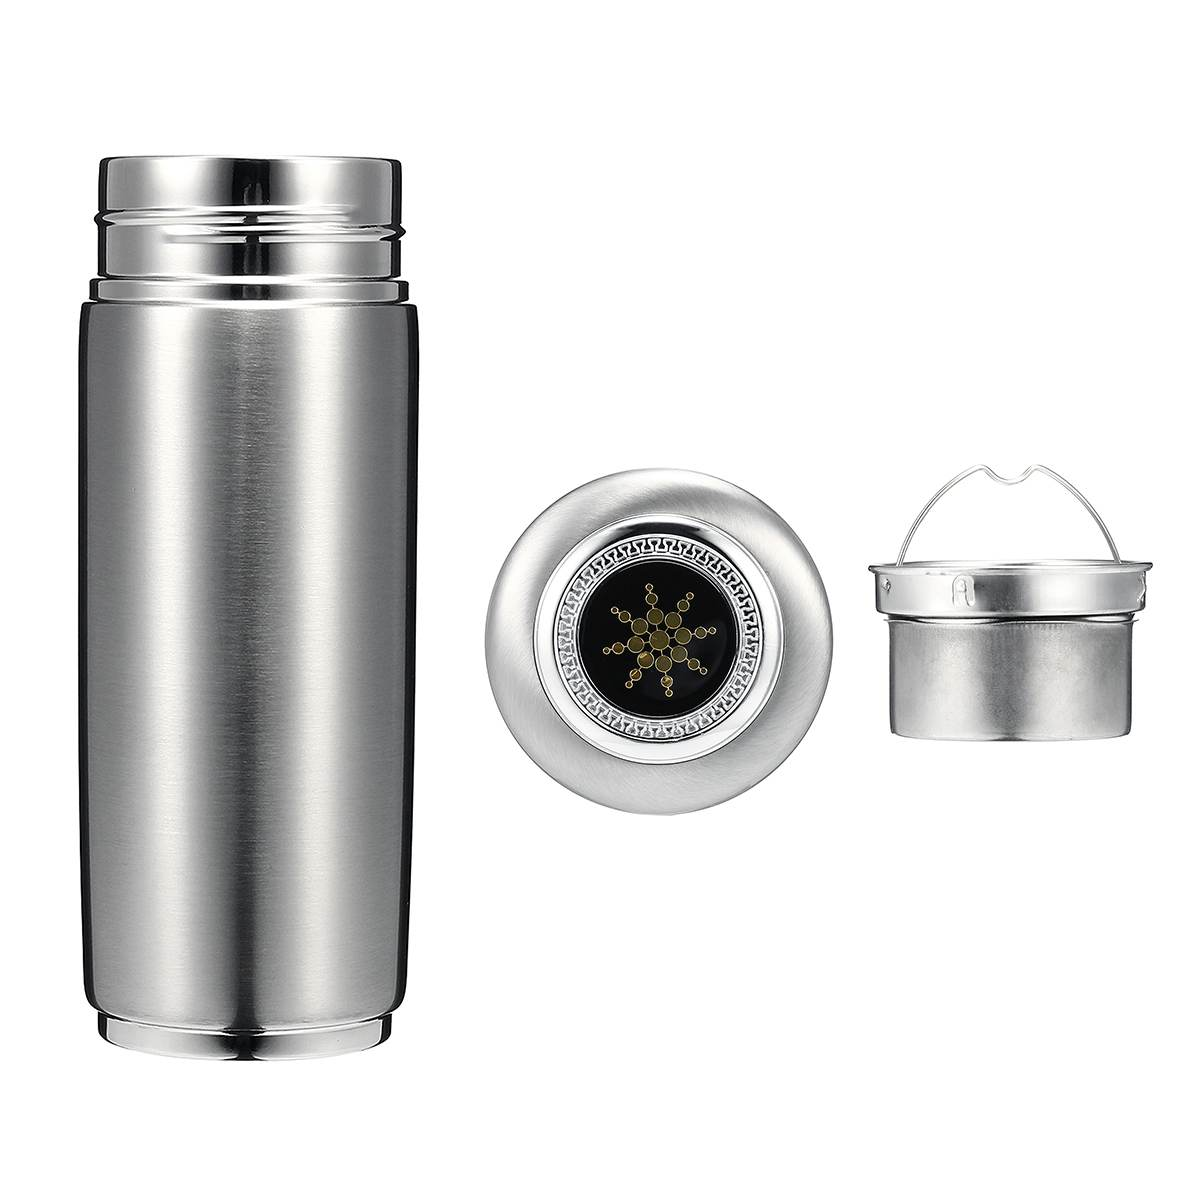 400ml Alkaline  Negative Ion Water Bottle Cup  Ionizer Bottles Energy Flask Water Cup Daily Health Care with Filter400ml Alkaline  Negative Ion Water Bottle Cup  Ionizer Bottles Energy Flask Water Cup Daily Health Care with Filter